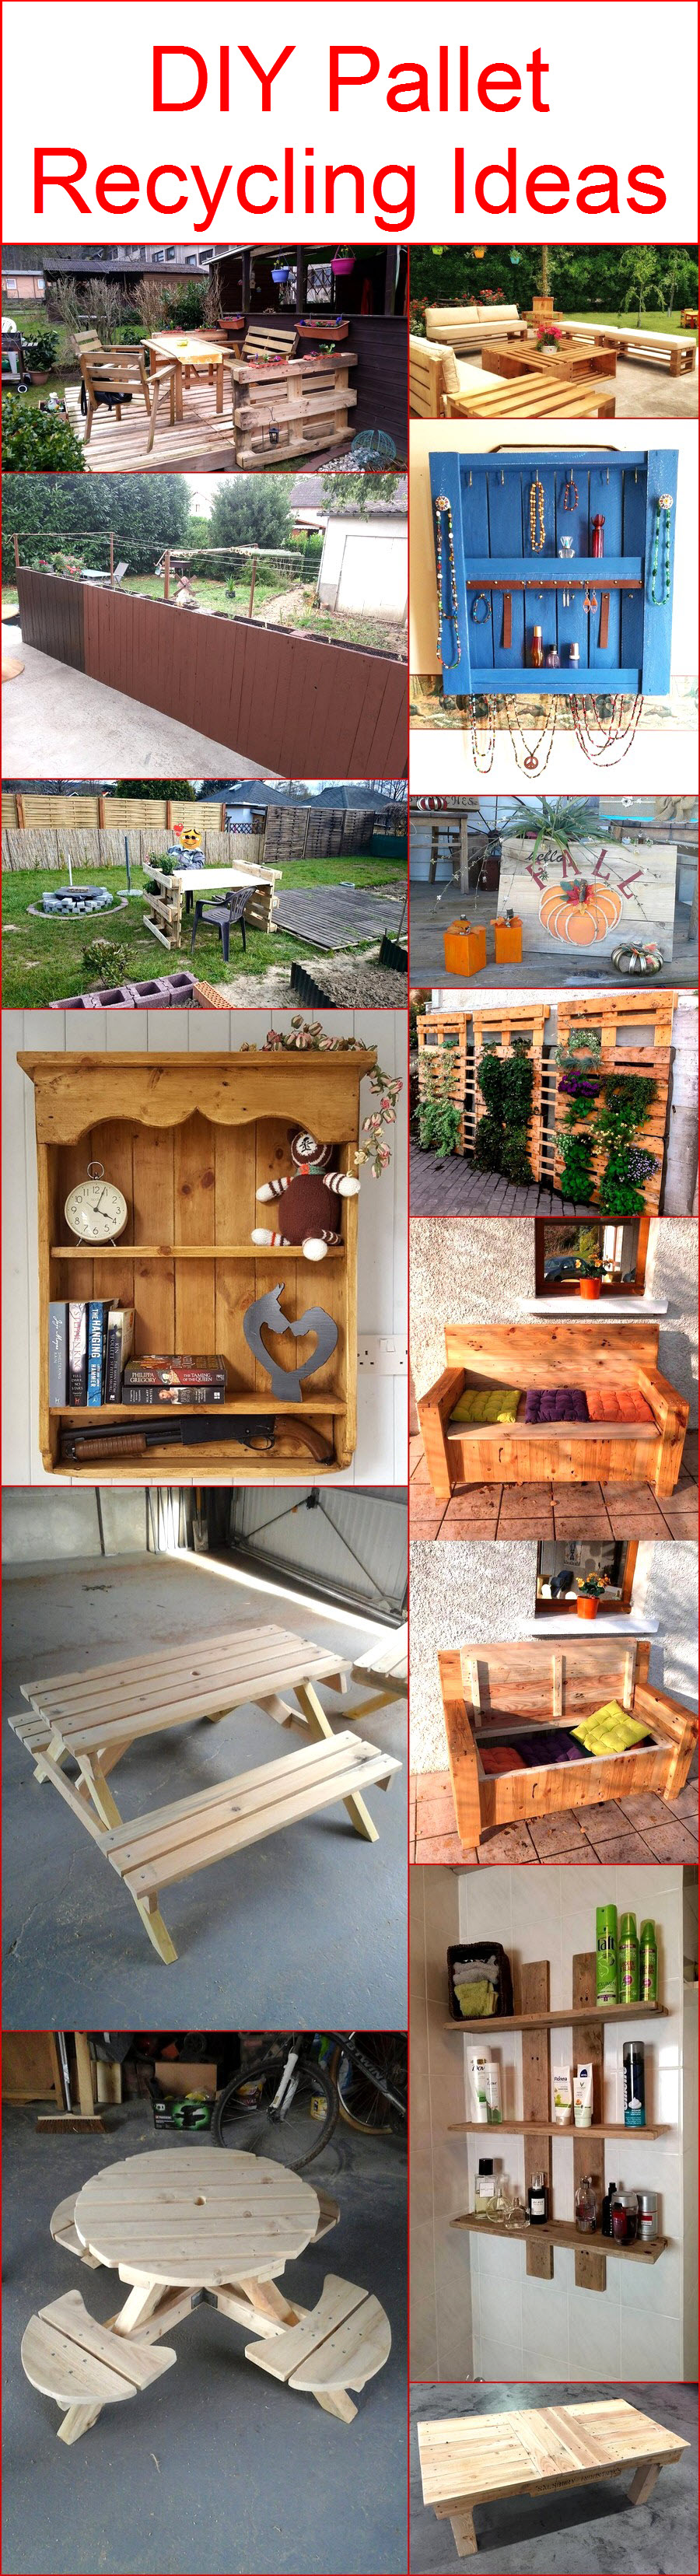 diy-pallet-recycling-ideas